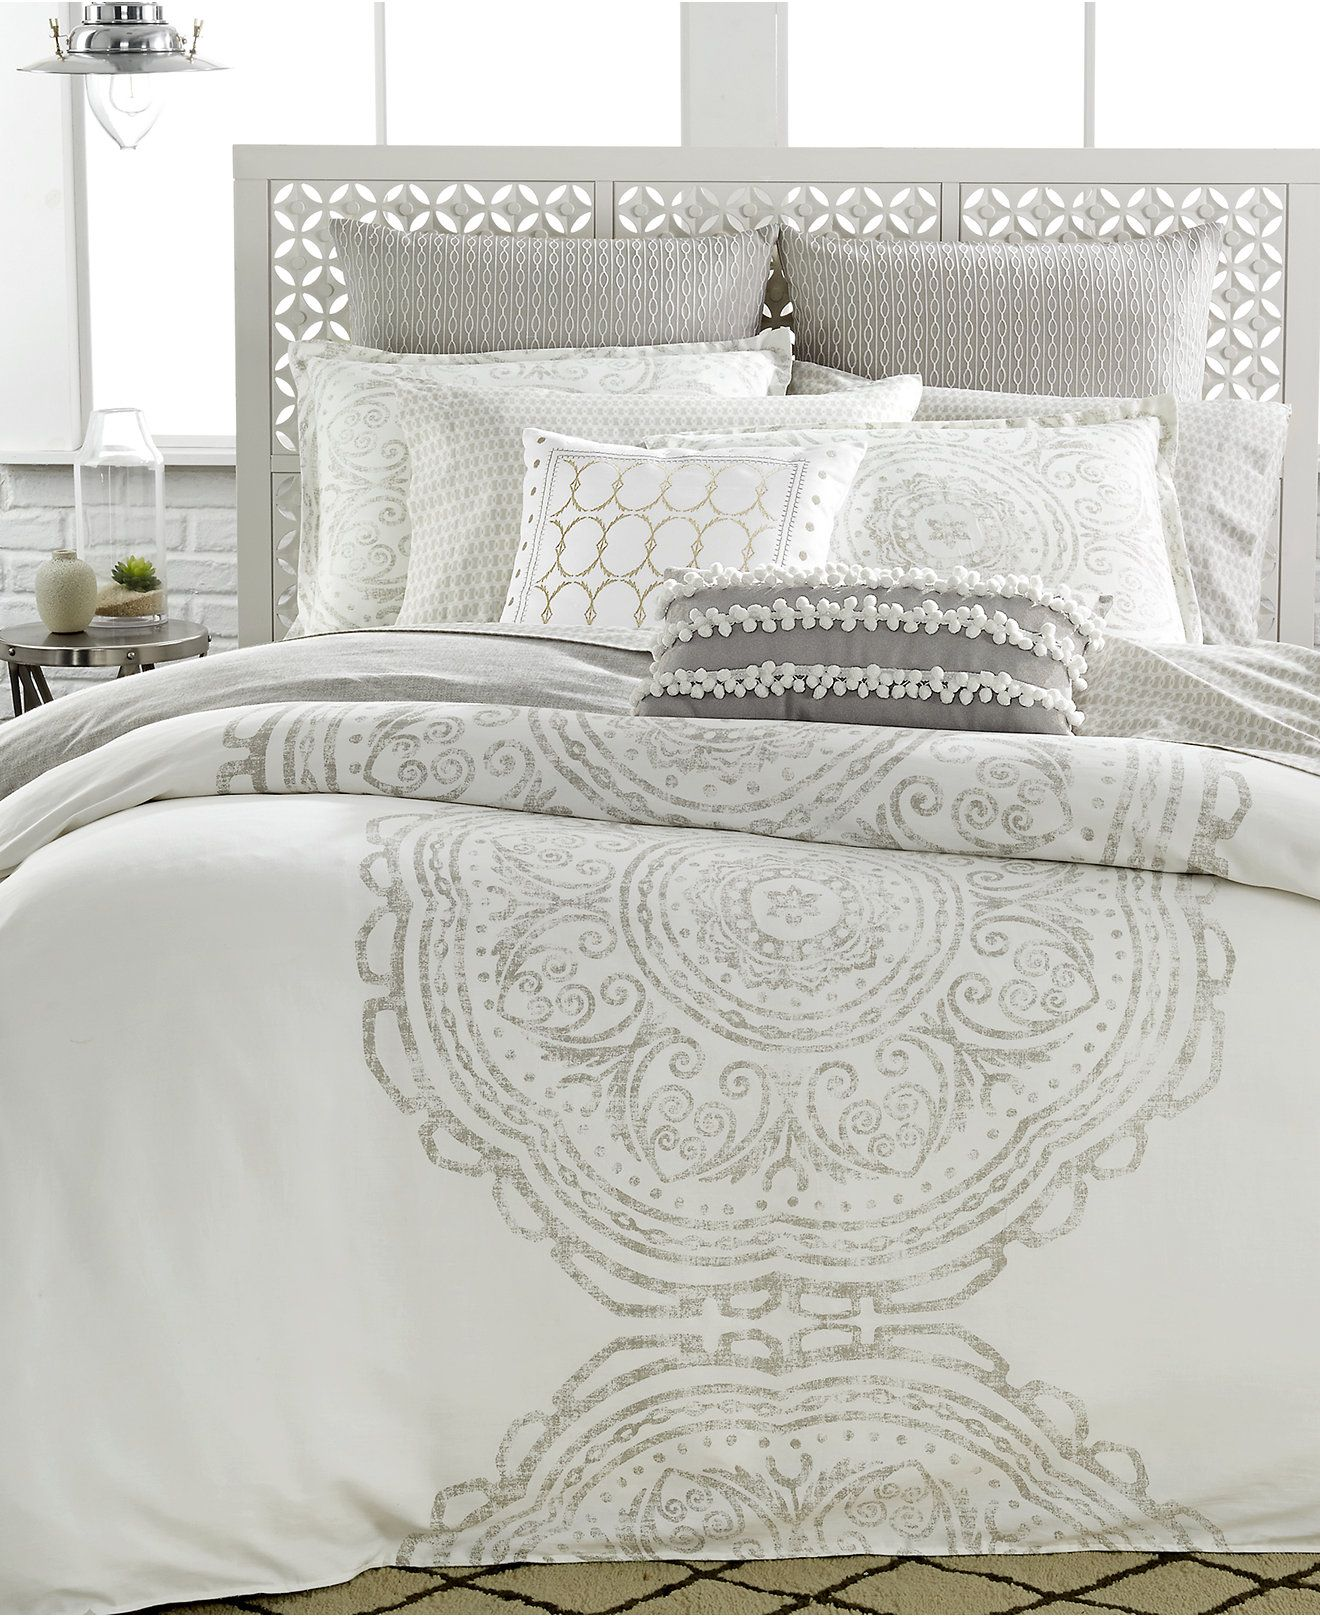 Bring A Relaxed Feel To The Bedroom The Token Bedding